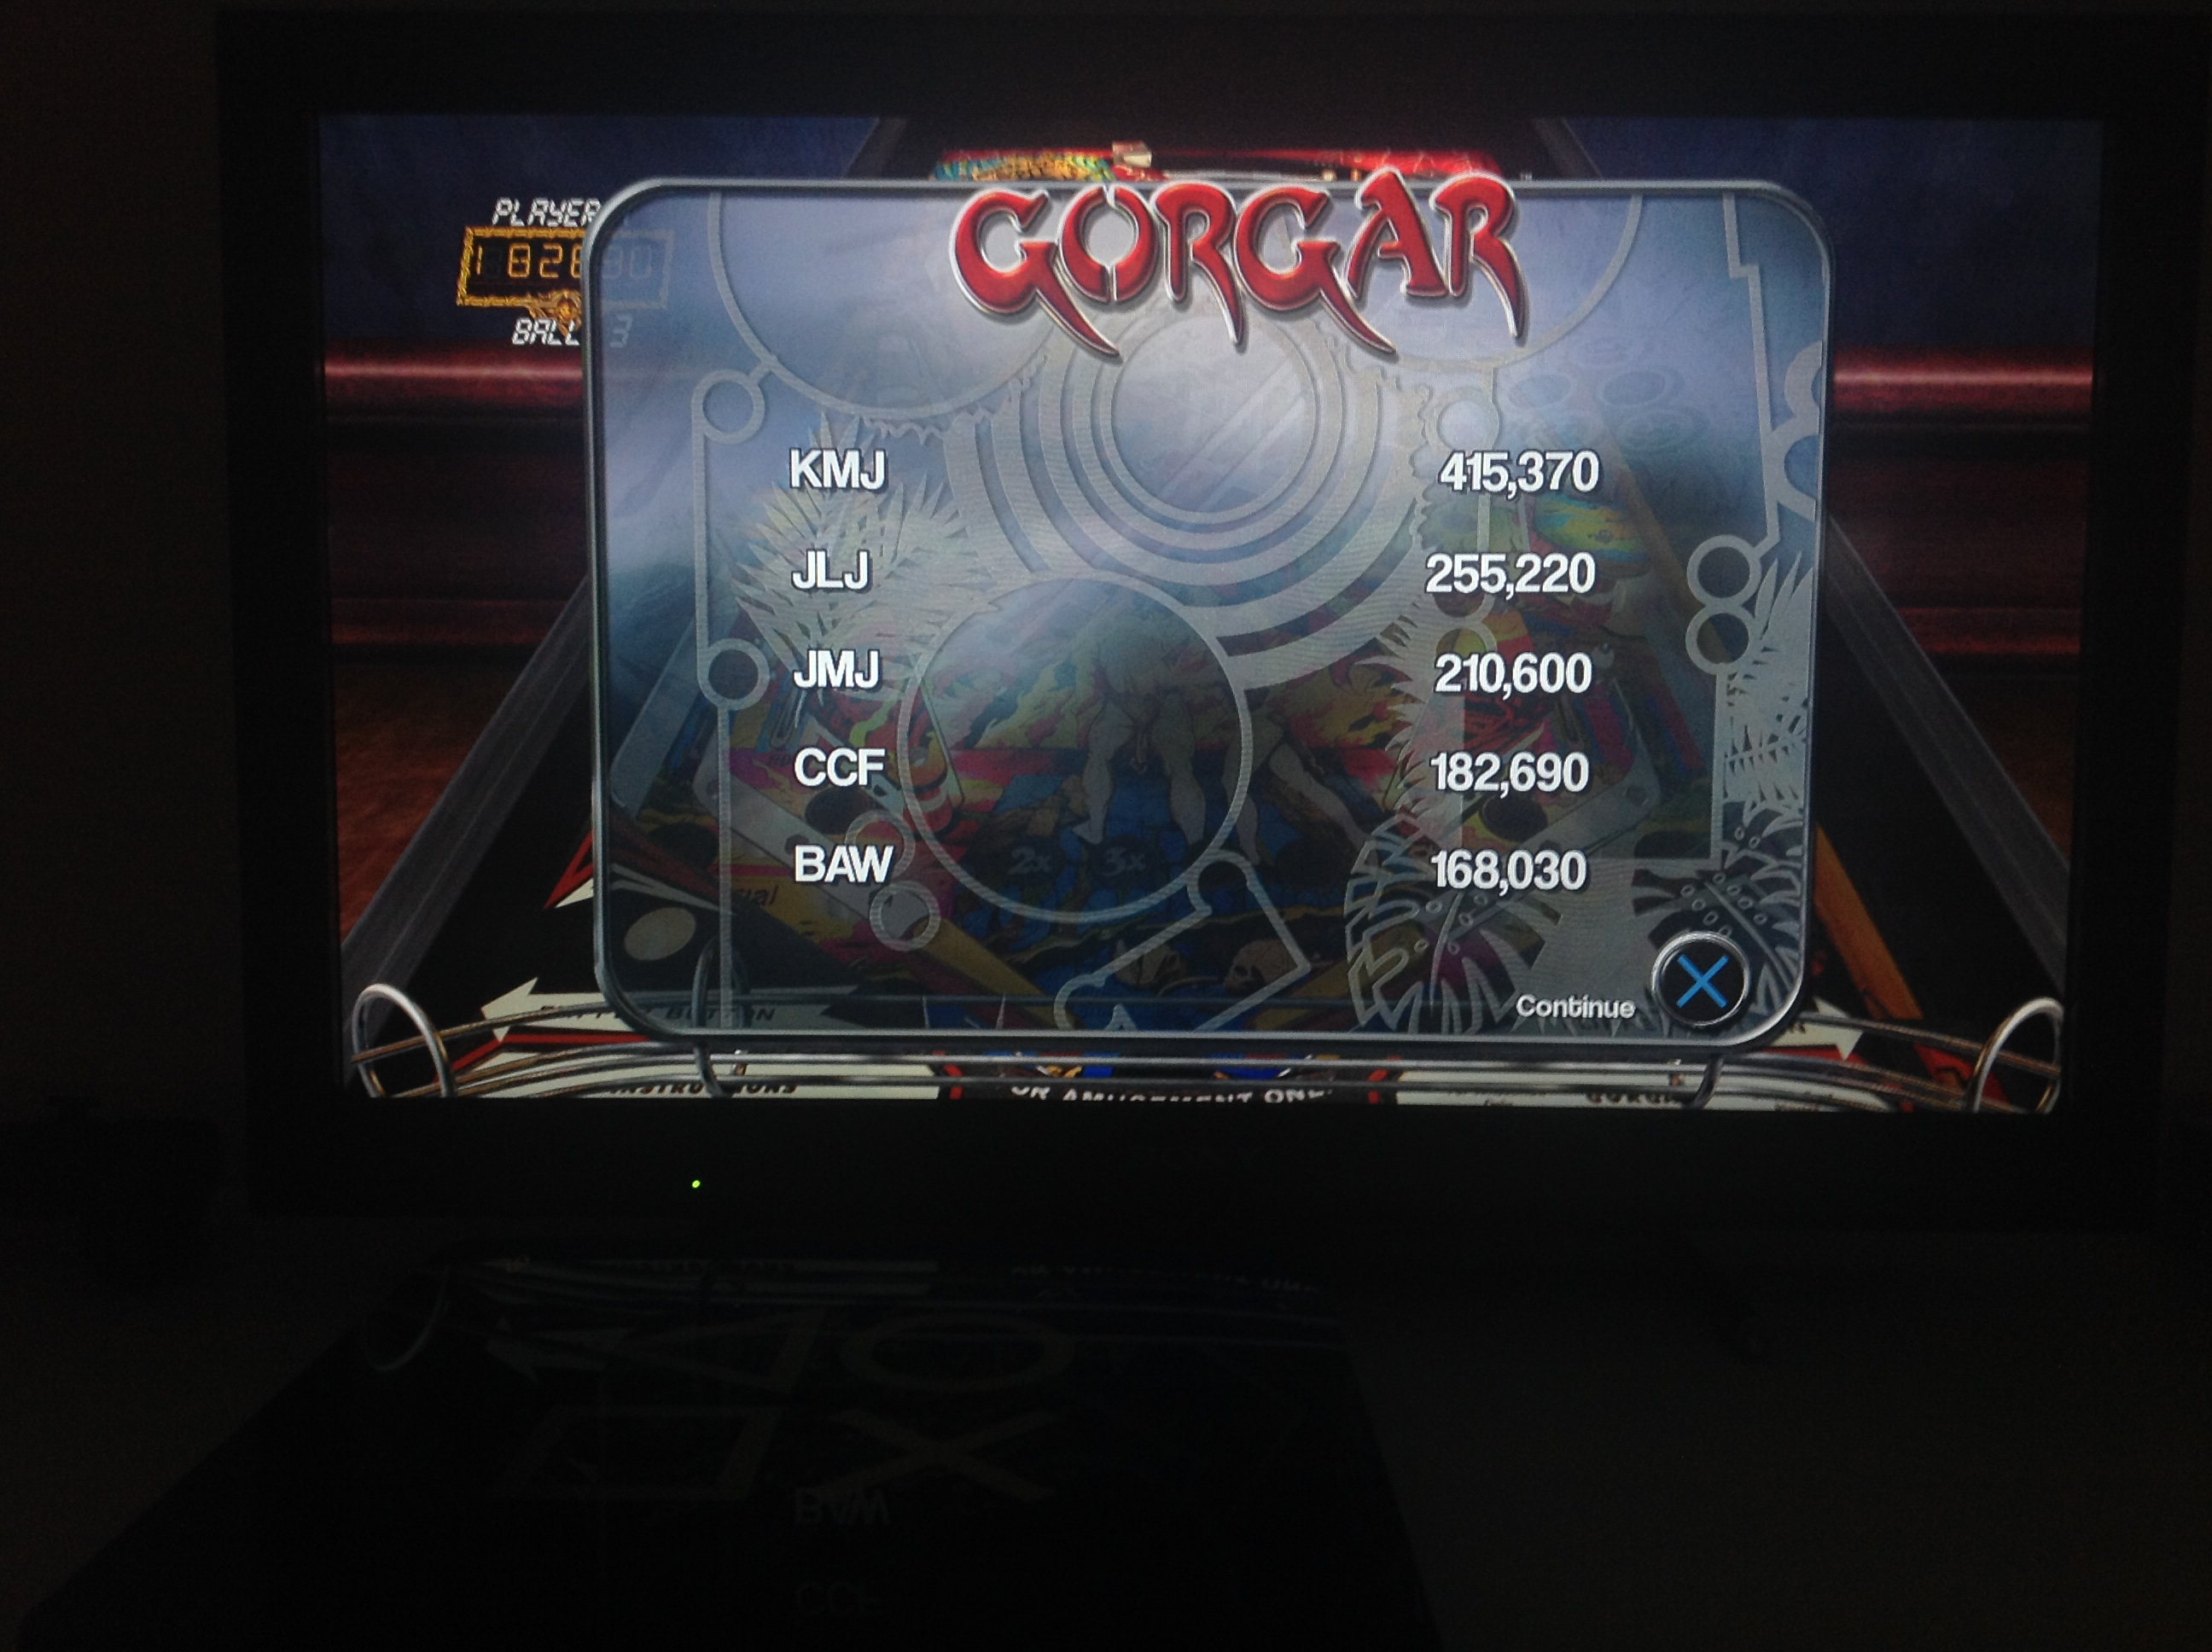 CoCoForest: Pinball Arcade: Gorgar (Playstation 4) 182,690 points on 2018-07-06 14:43:38